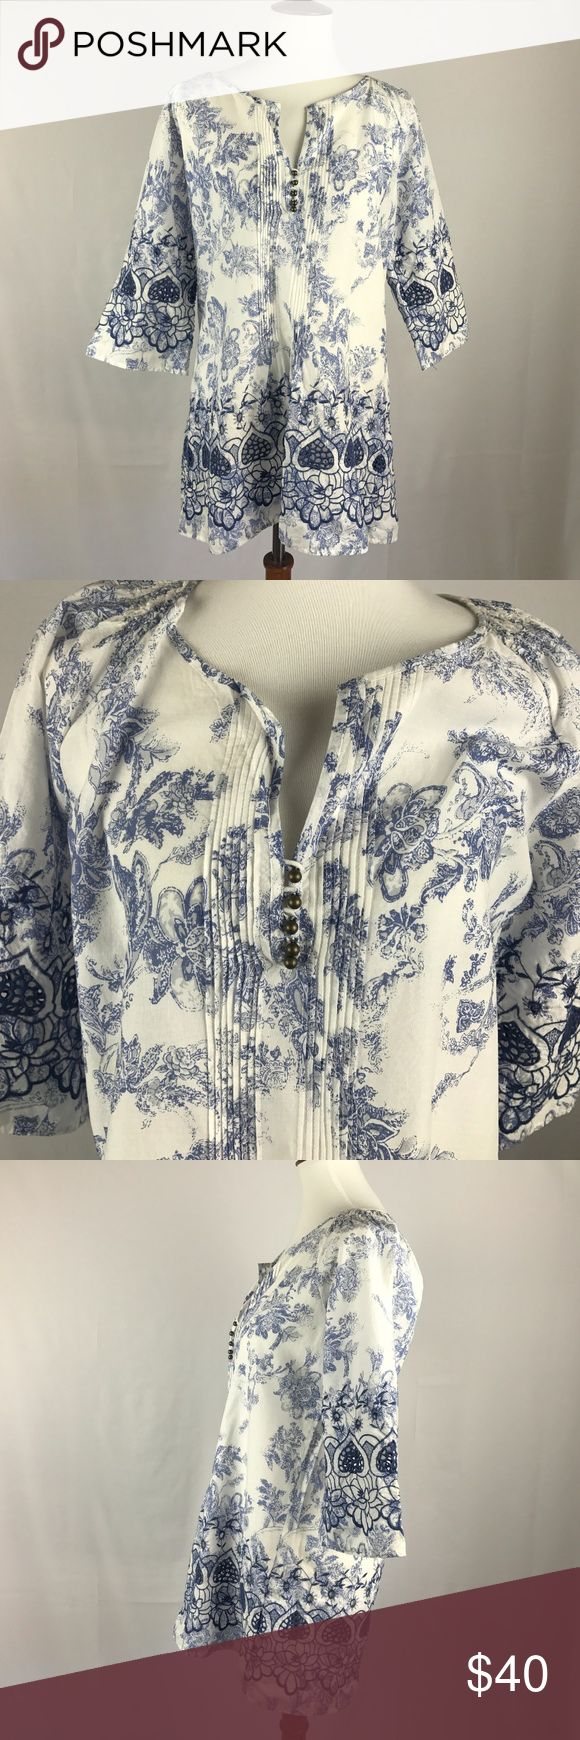 """NEW Soft Surroundings Eyelet Blue and White Blouse NWOT 21"""" armpit to armpit, 21"""" armpit to hem Soft Surroundings Tops Blouses"""